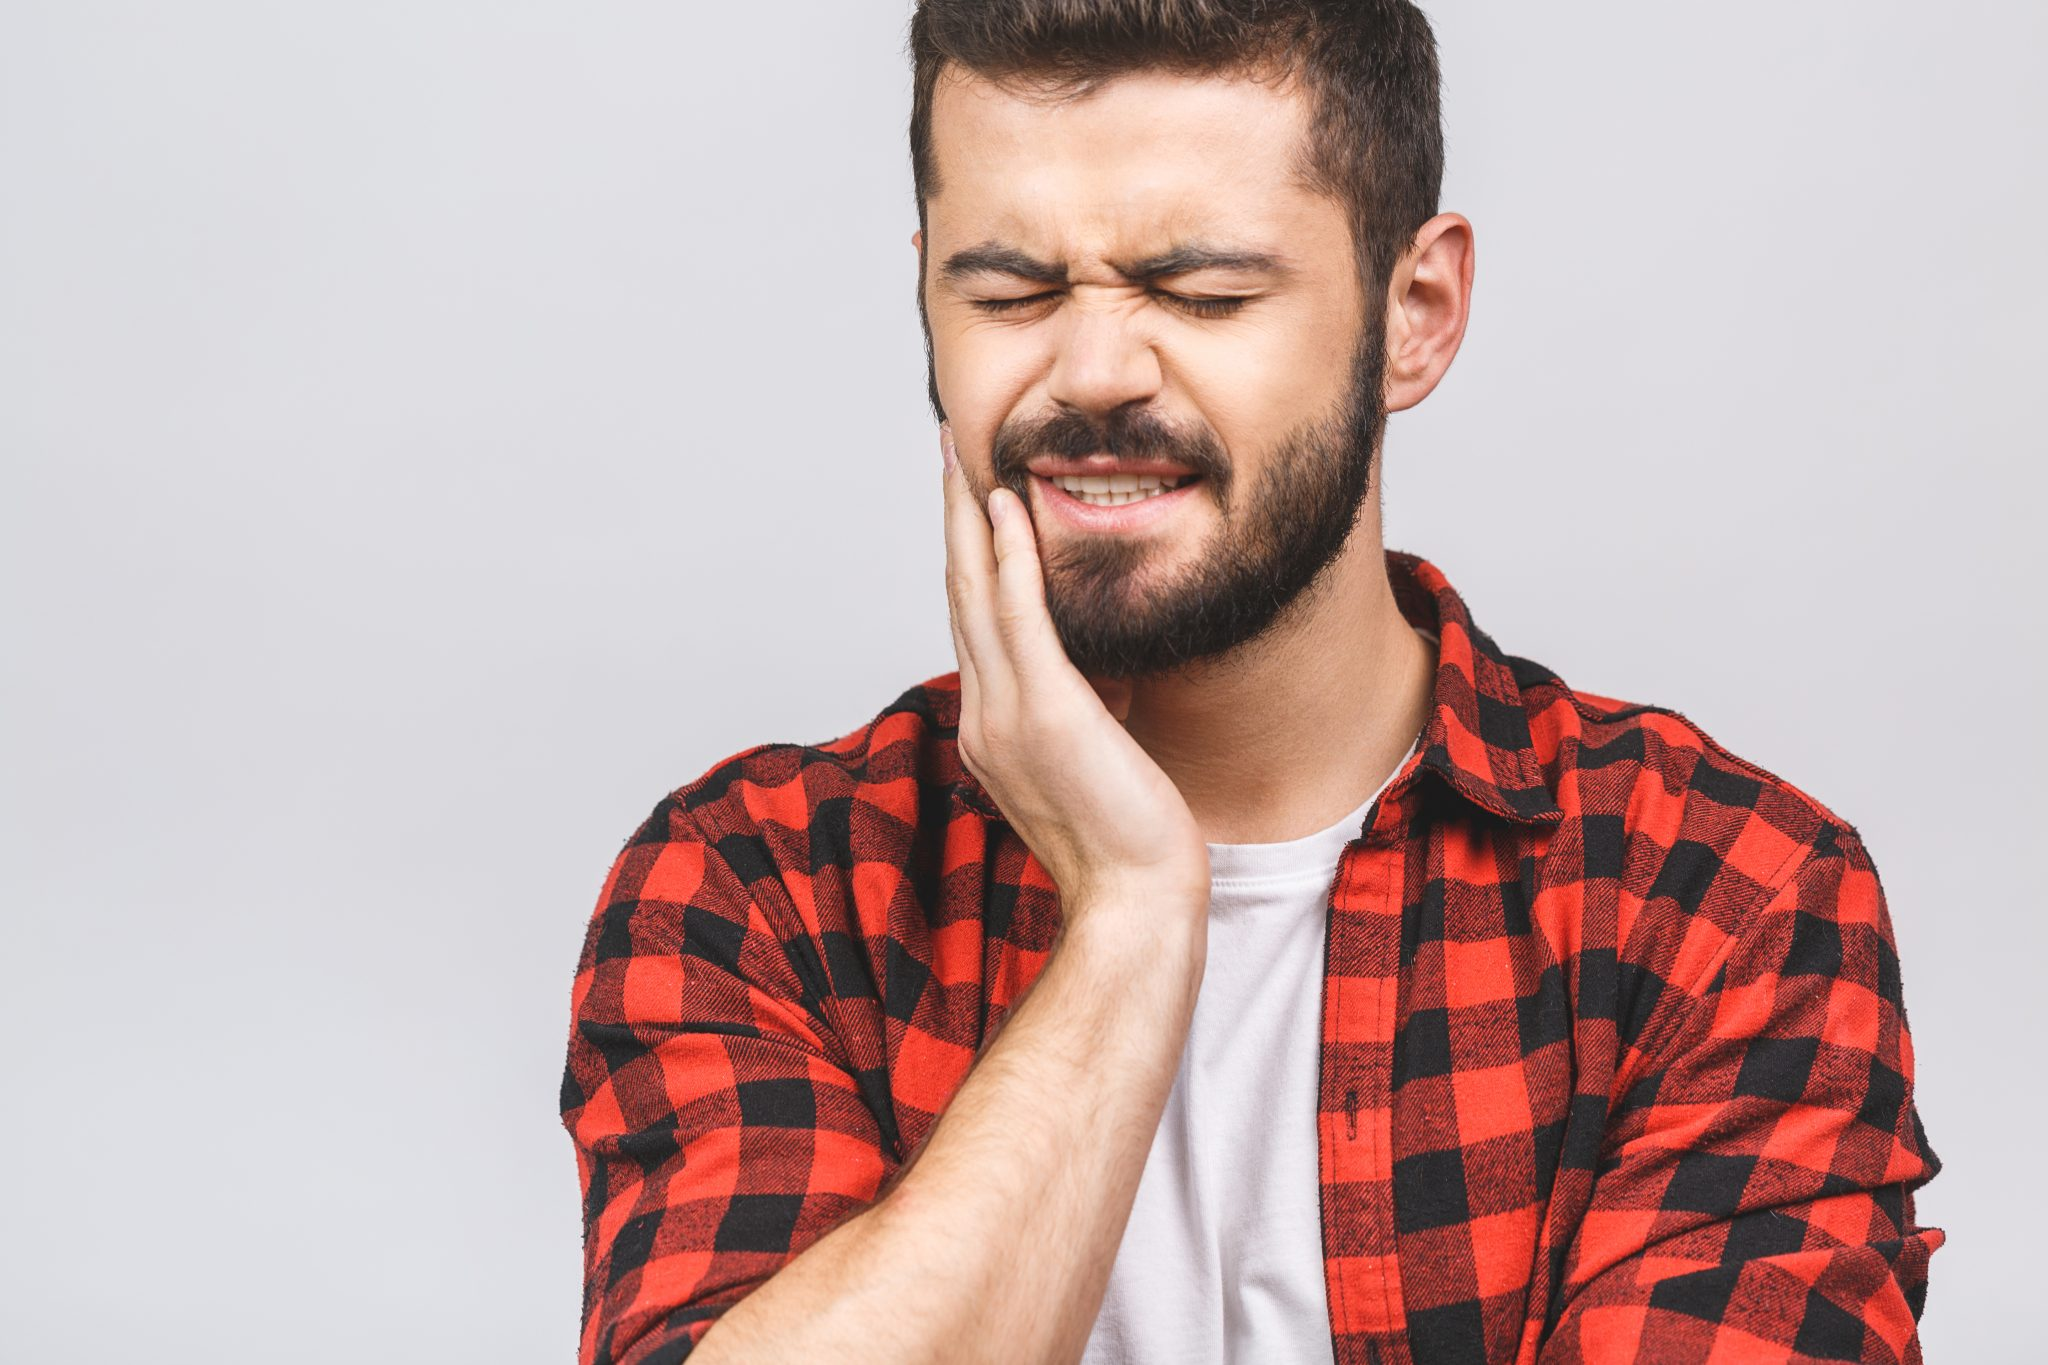 Close Up Portrait Of Nervous Unhappy Troubled Handsome Bearded Man Touching His Cheek He Has Toothache Isolated On White Background Copy Space.